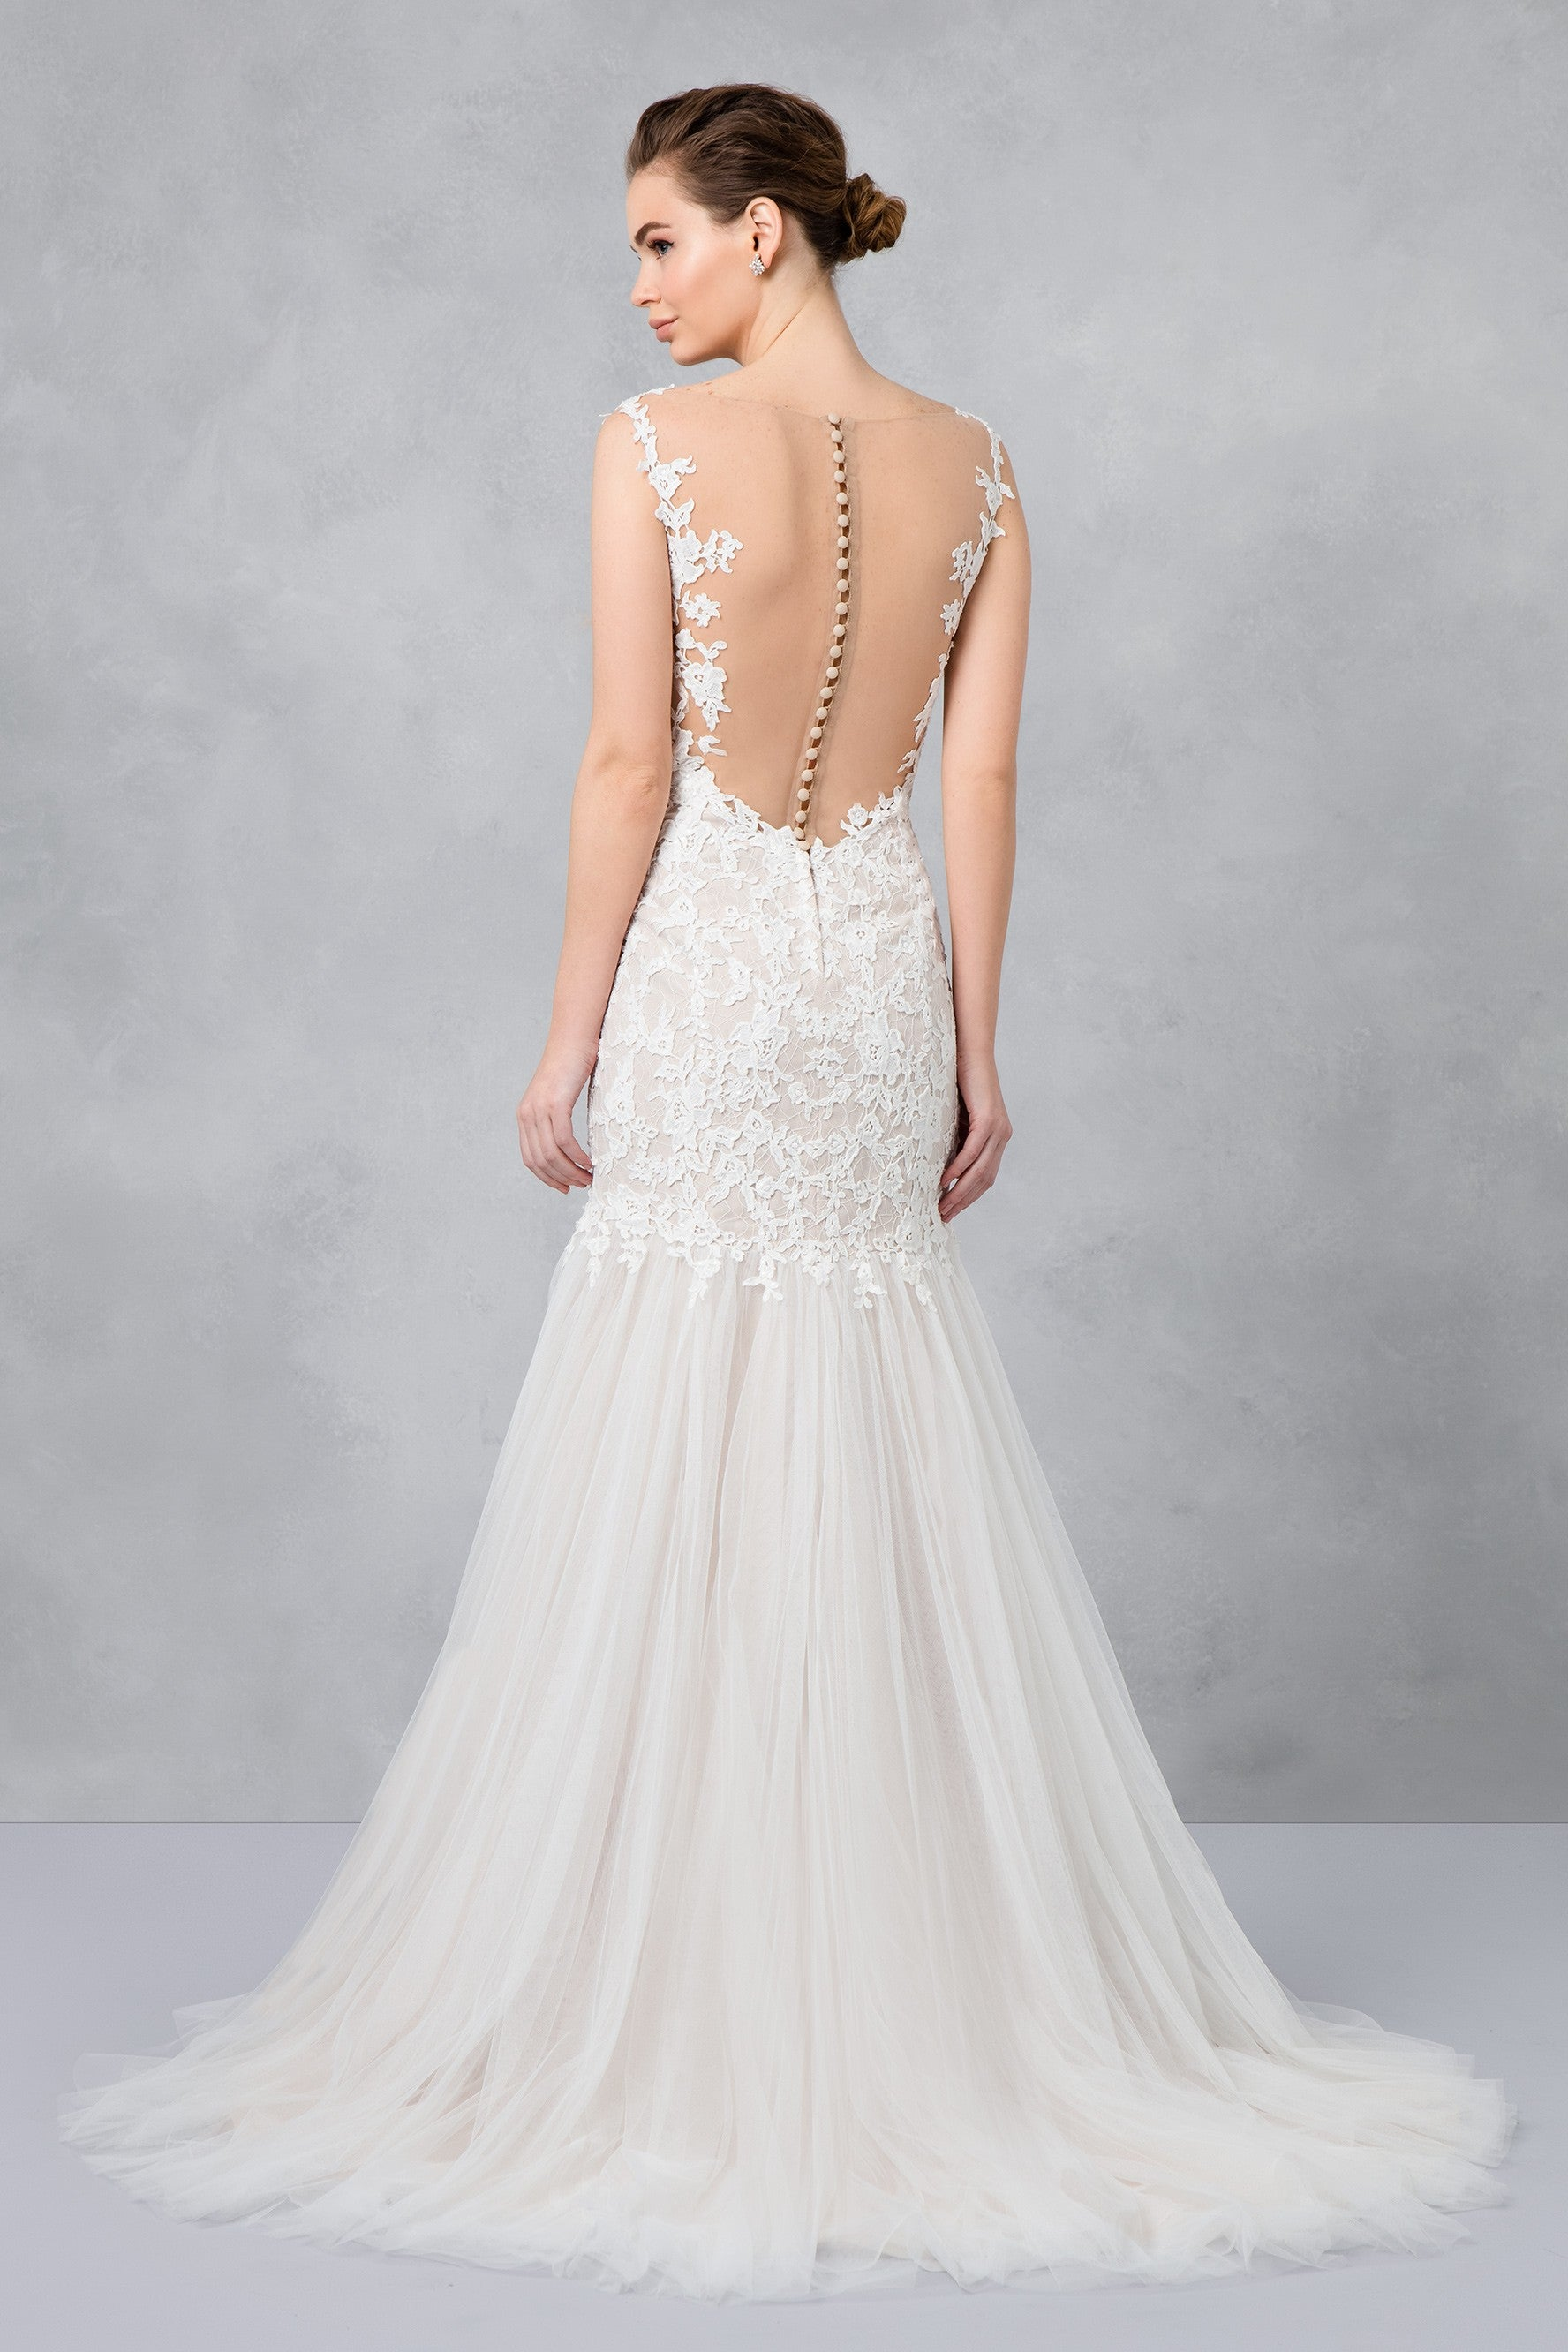 Petite Beaded Venice Scalloped Lace Wedding Dress 7swg723